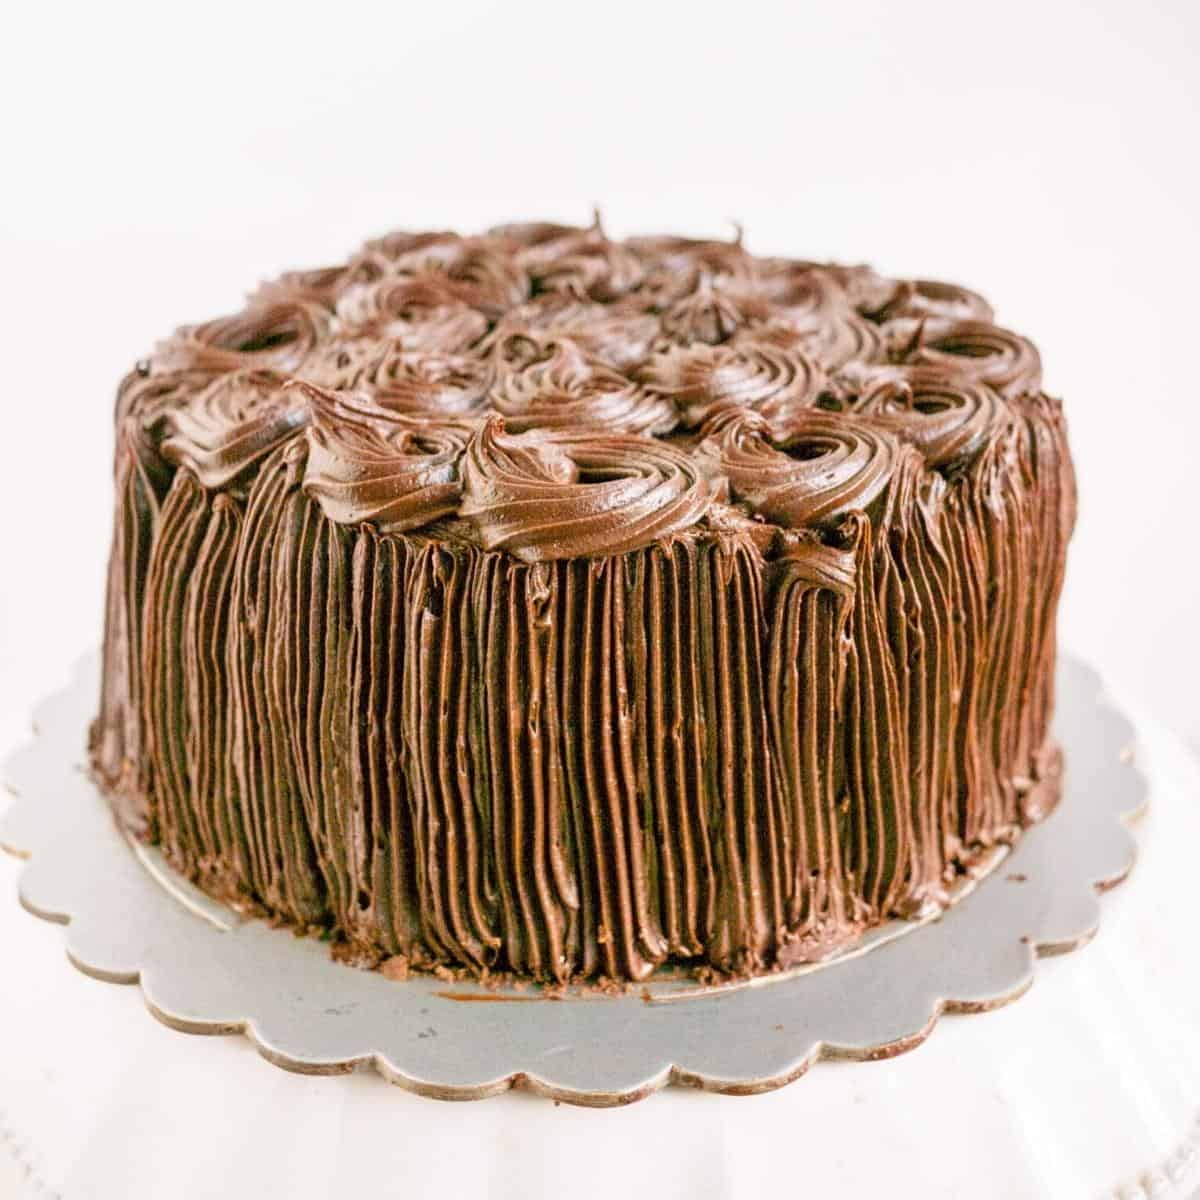 Frosted chiffon cake with Kahlua frosting.